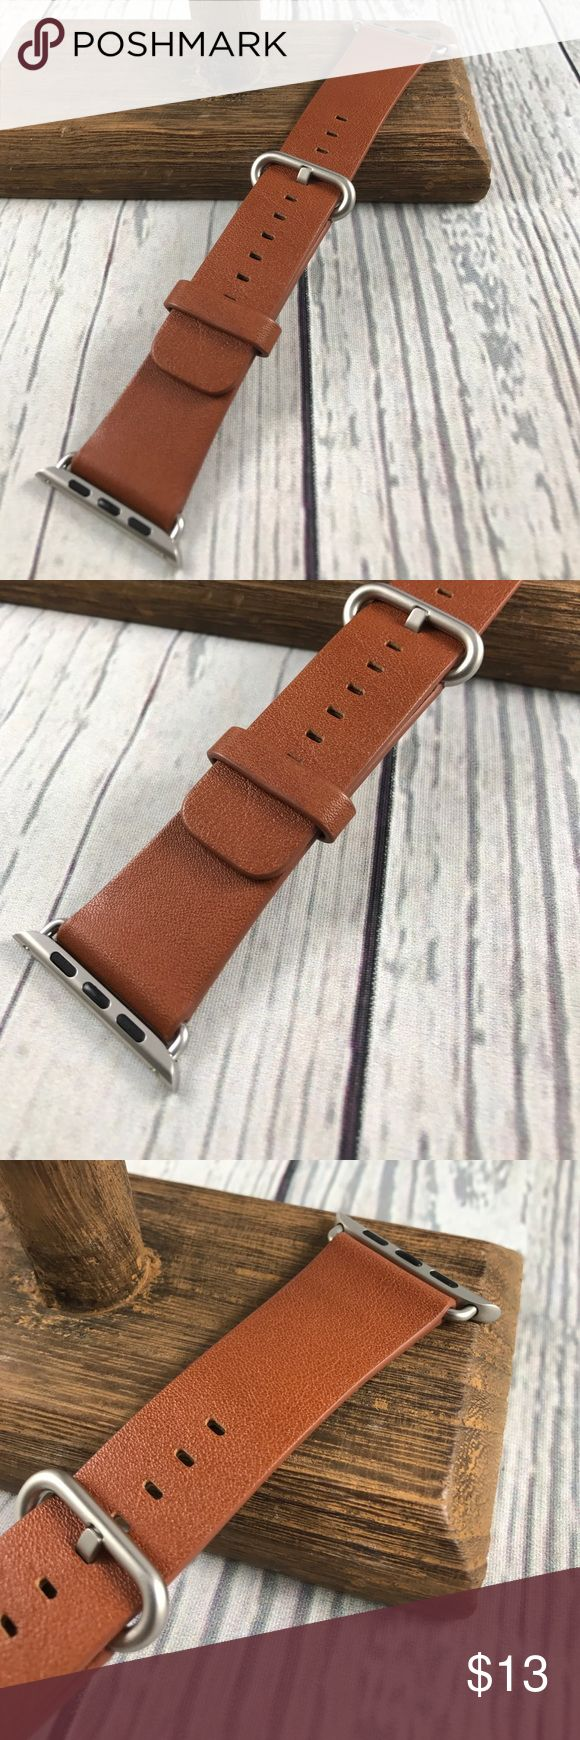 42mm Brown Leather Replacement Band 4 Apple Watch Size medium Large. Very good condition. Not Apple Brand. Generic. Nice brown genuine leather kavaj Accessories Watches